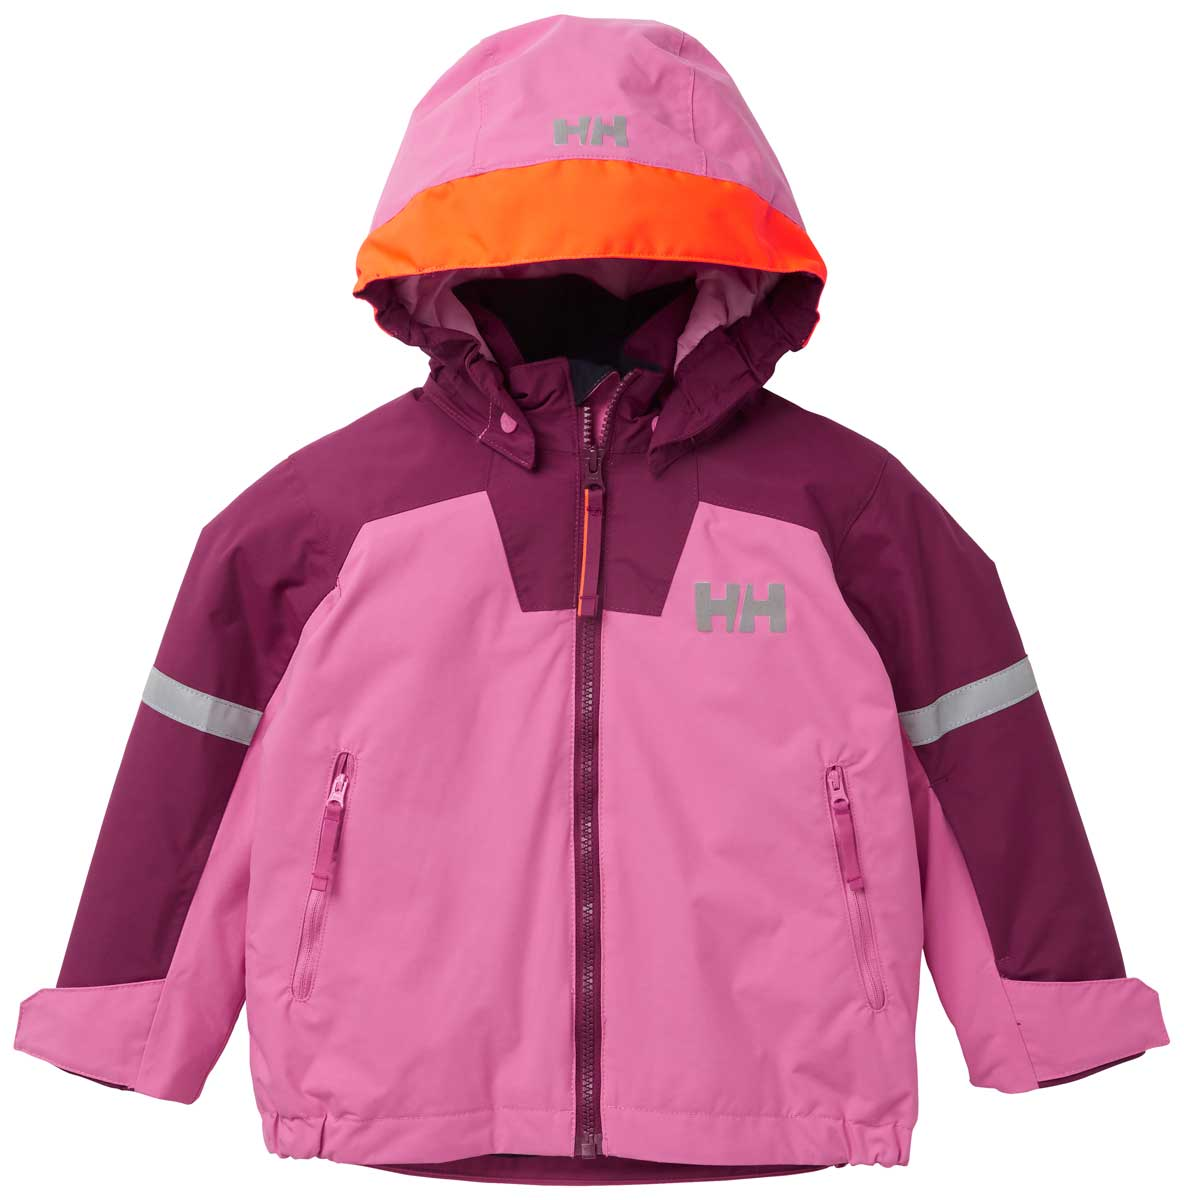 Helly Hansen Kids' Legend Insulated Jacket in Ibis Rose